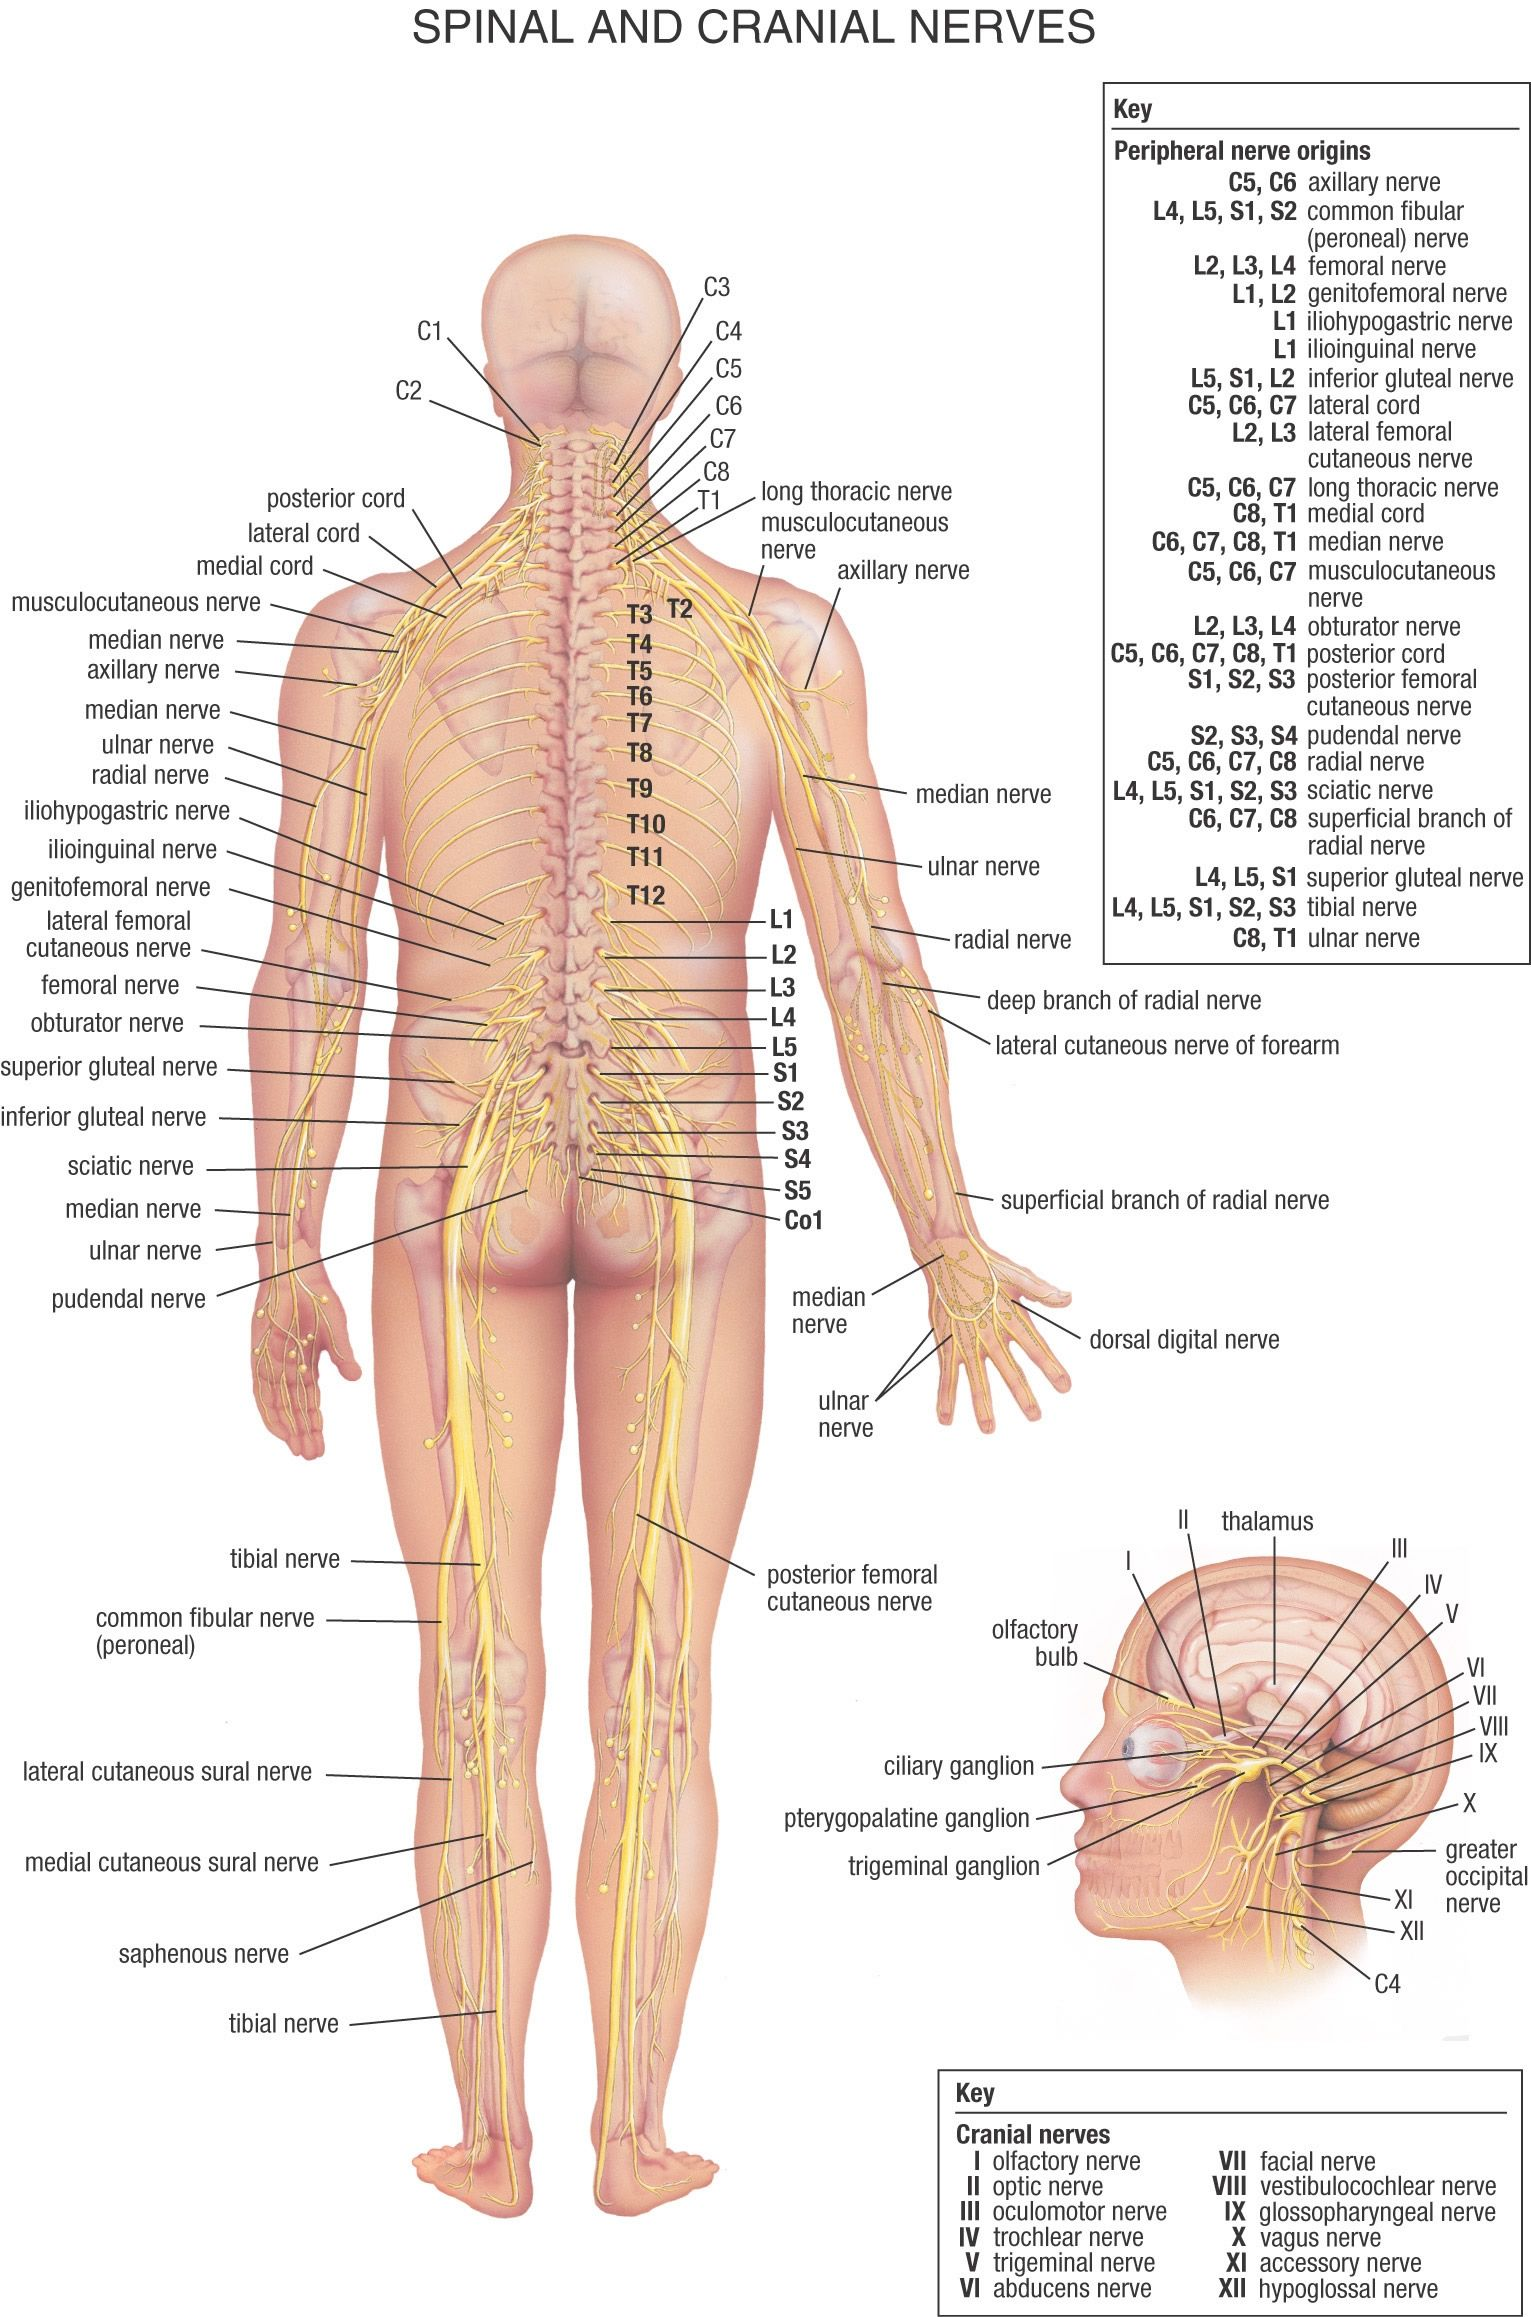 Spinal Anatomy - Nerves | Body | Pinterest | Anatomía, Medicina y ...